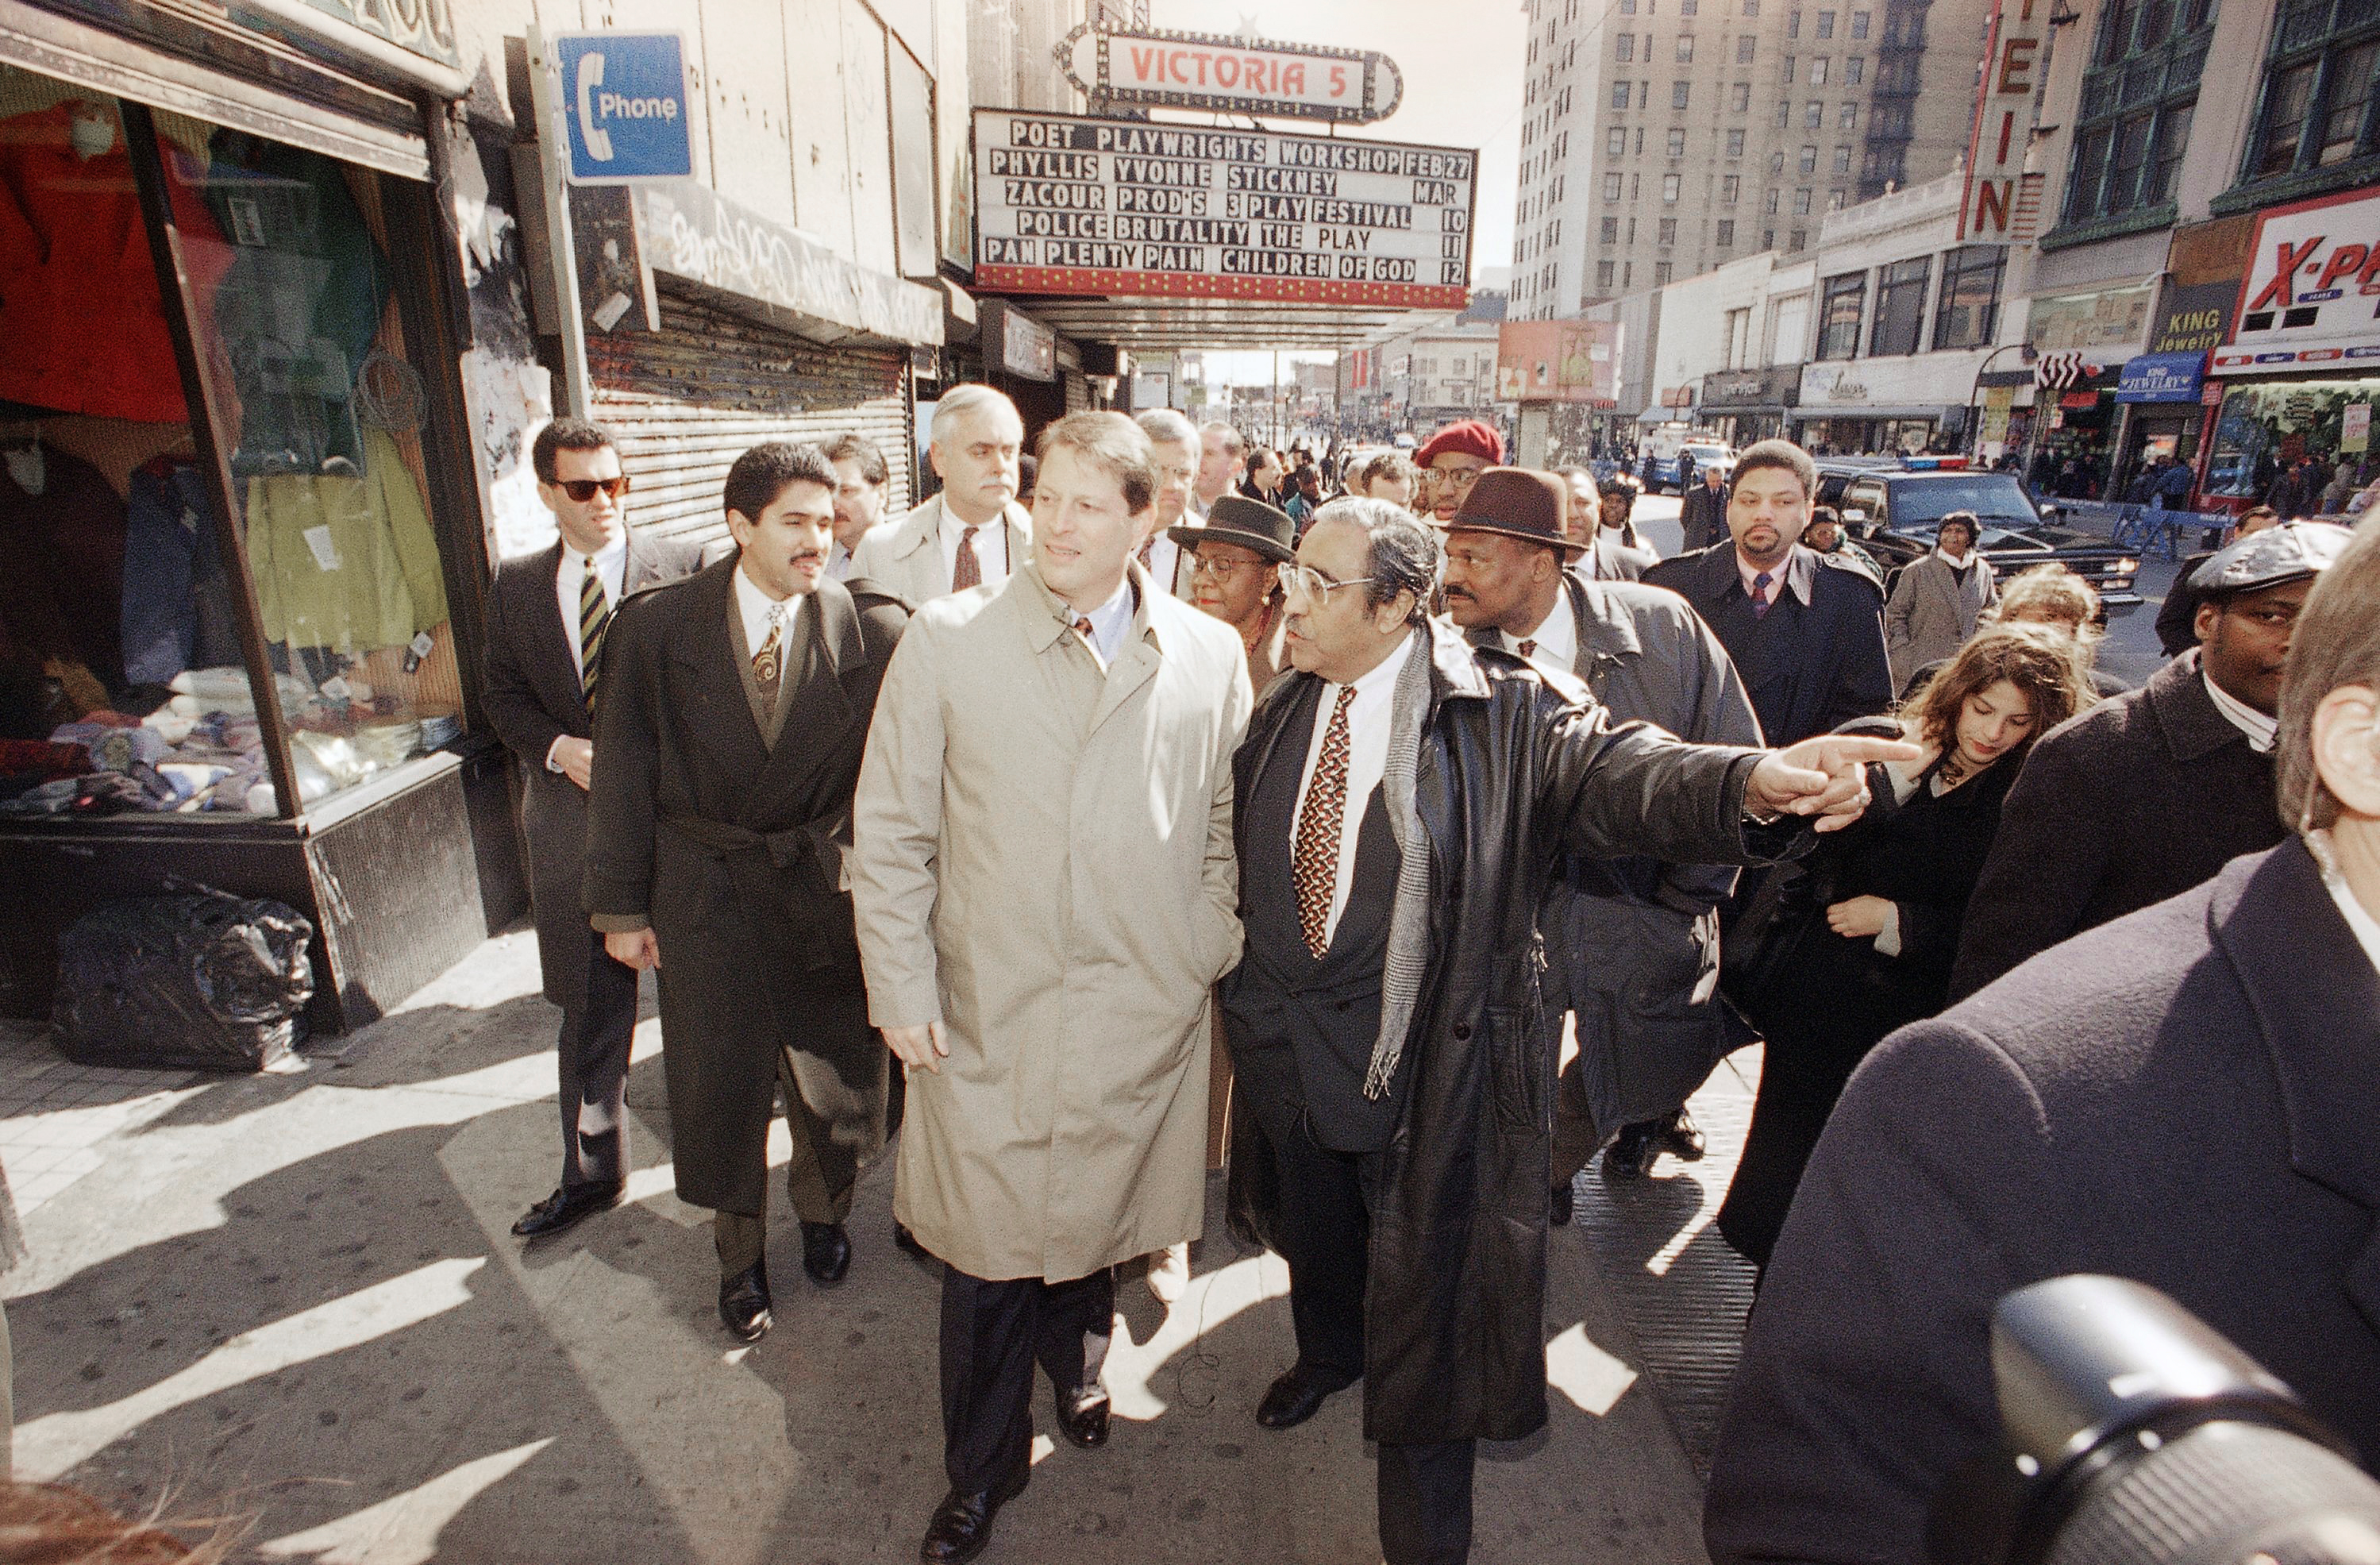 Rep. Charles Rangel, D-N.Y., right, walks with U.S. Vice President Al Gore during a tour of an Empowerment Zone in the Harlem neighborhood of New York City, March 3, 1995.